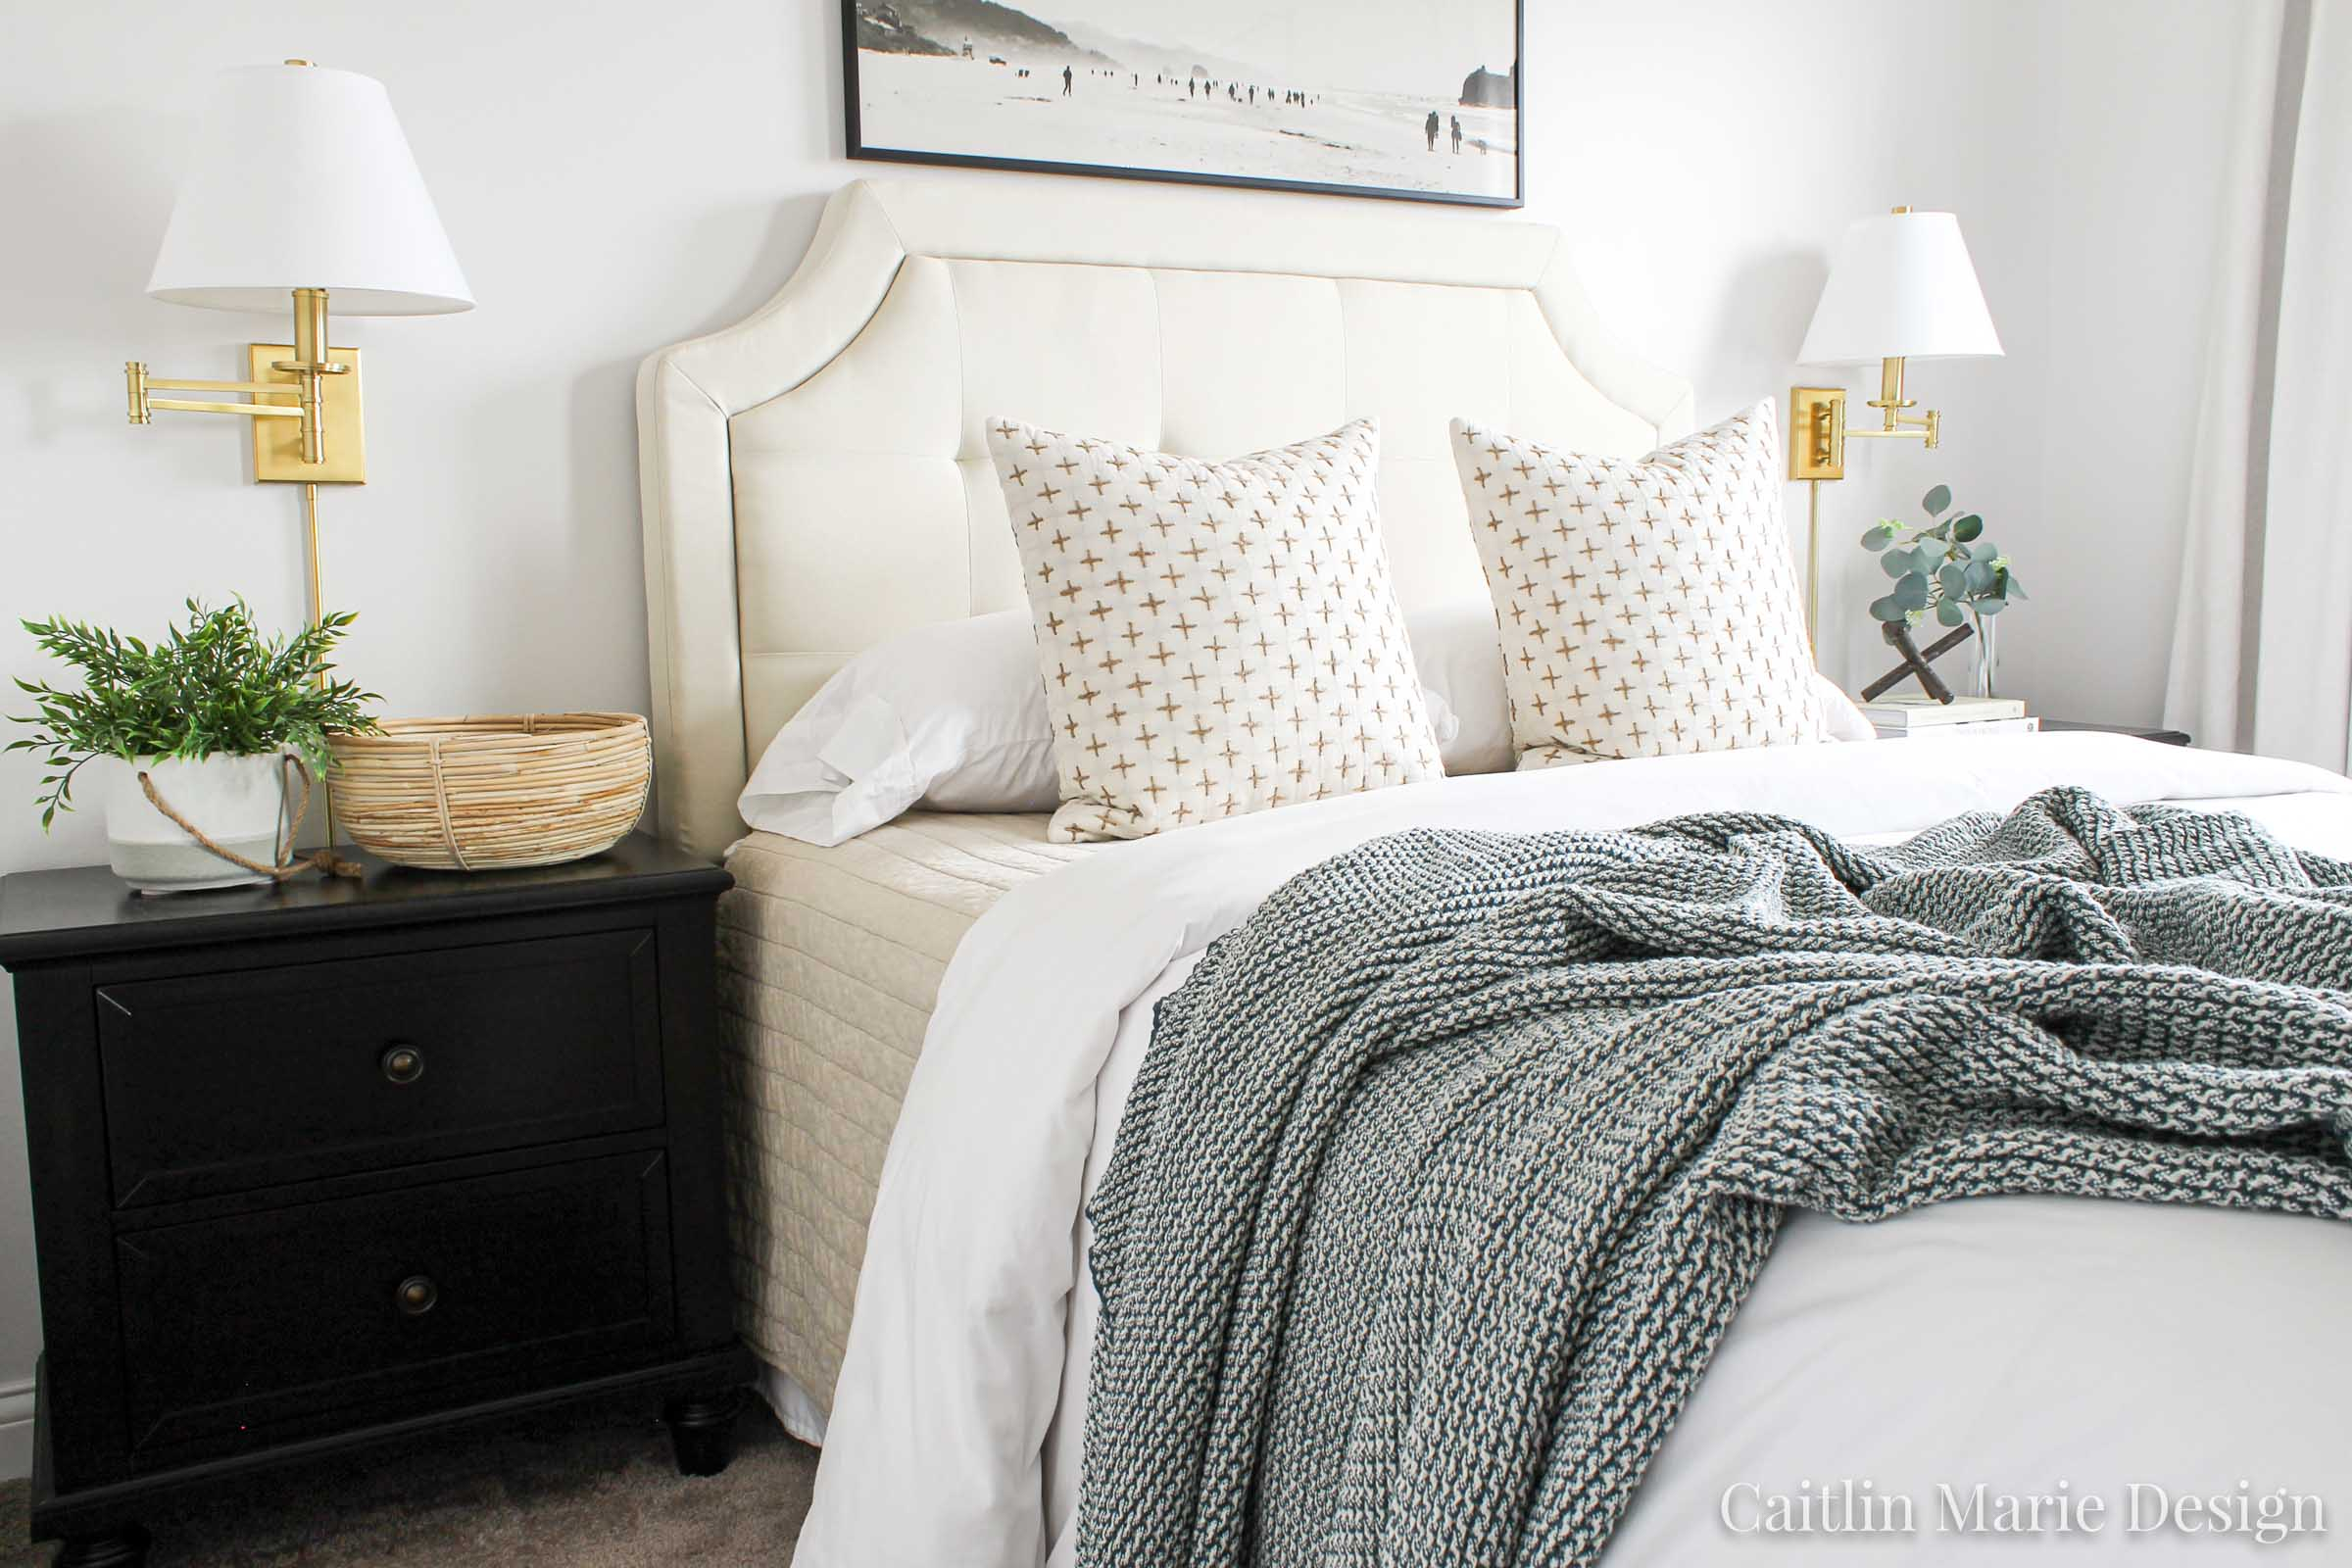 Spring Bedroom Decor | Loloi Layla rug, brass wall sconces, wide art above the bed, tufted headboard, dark wood nightstand